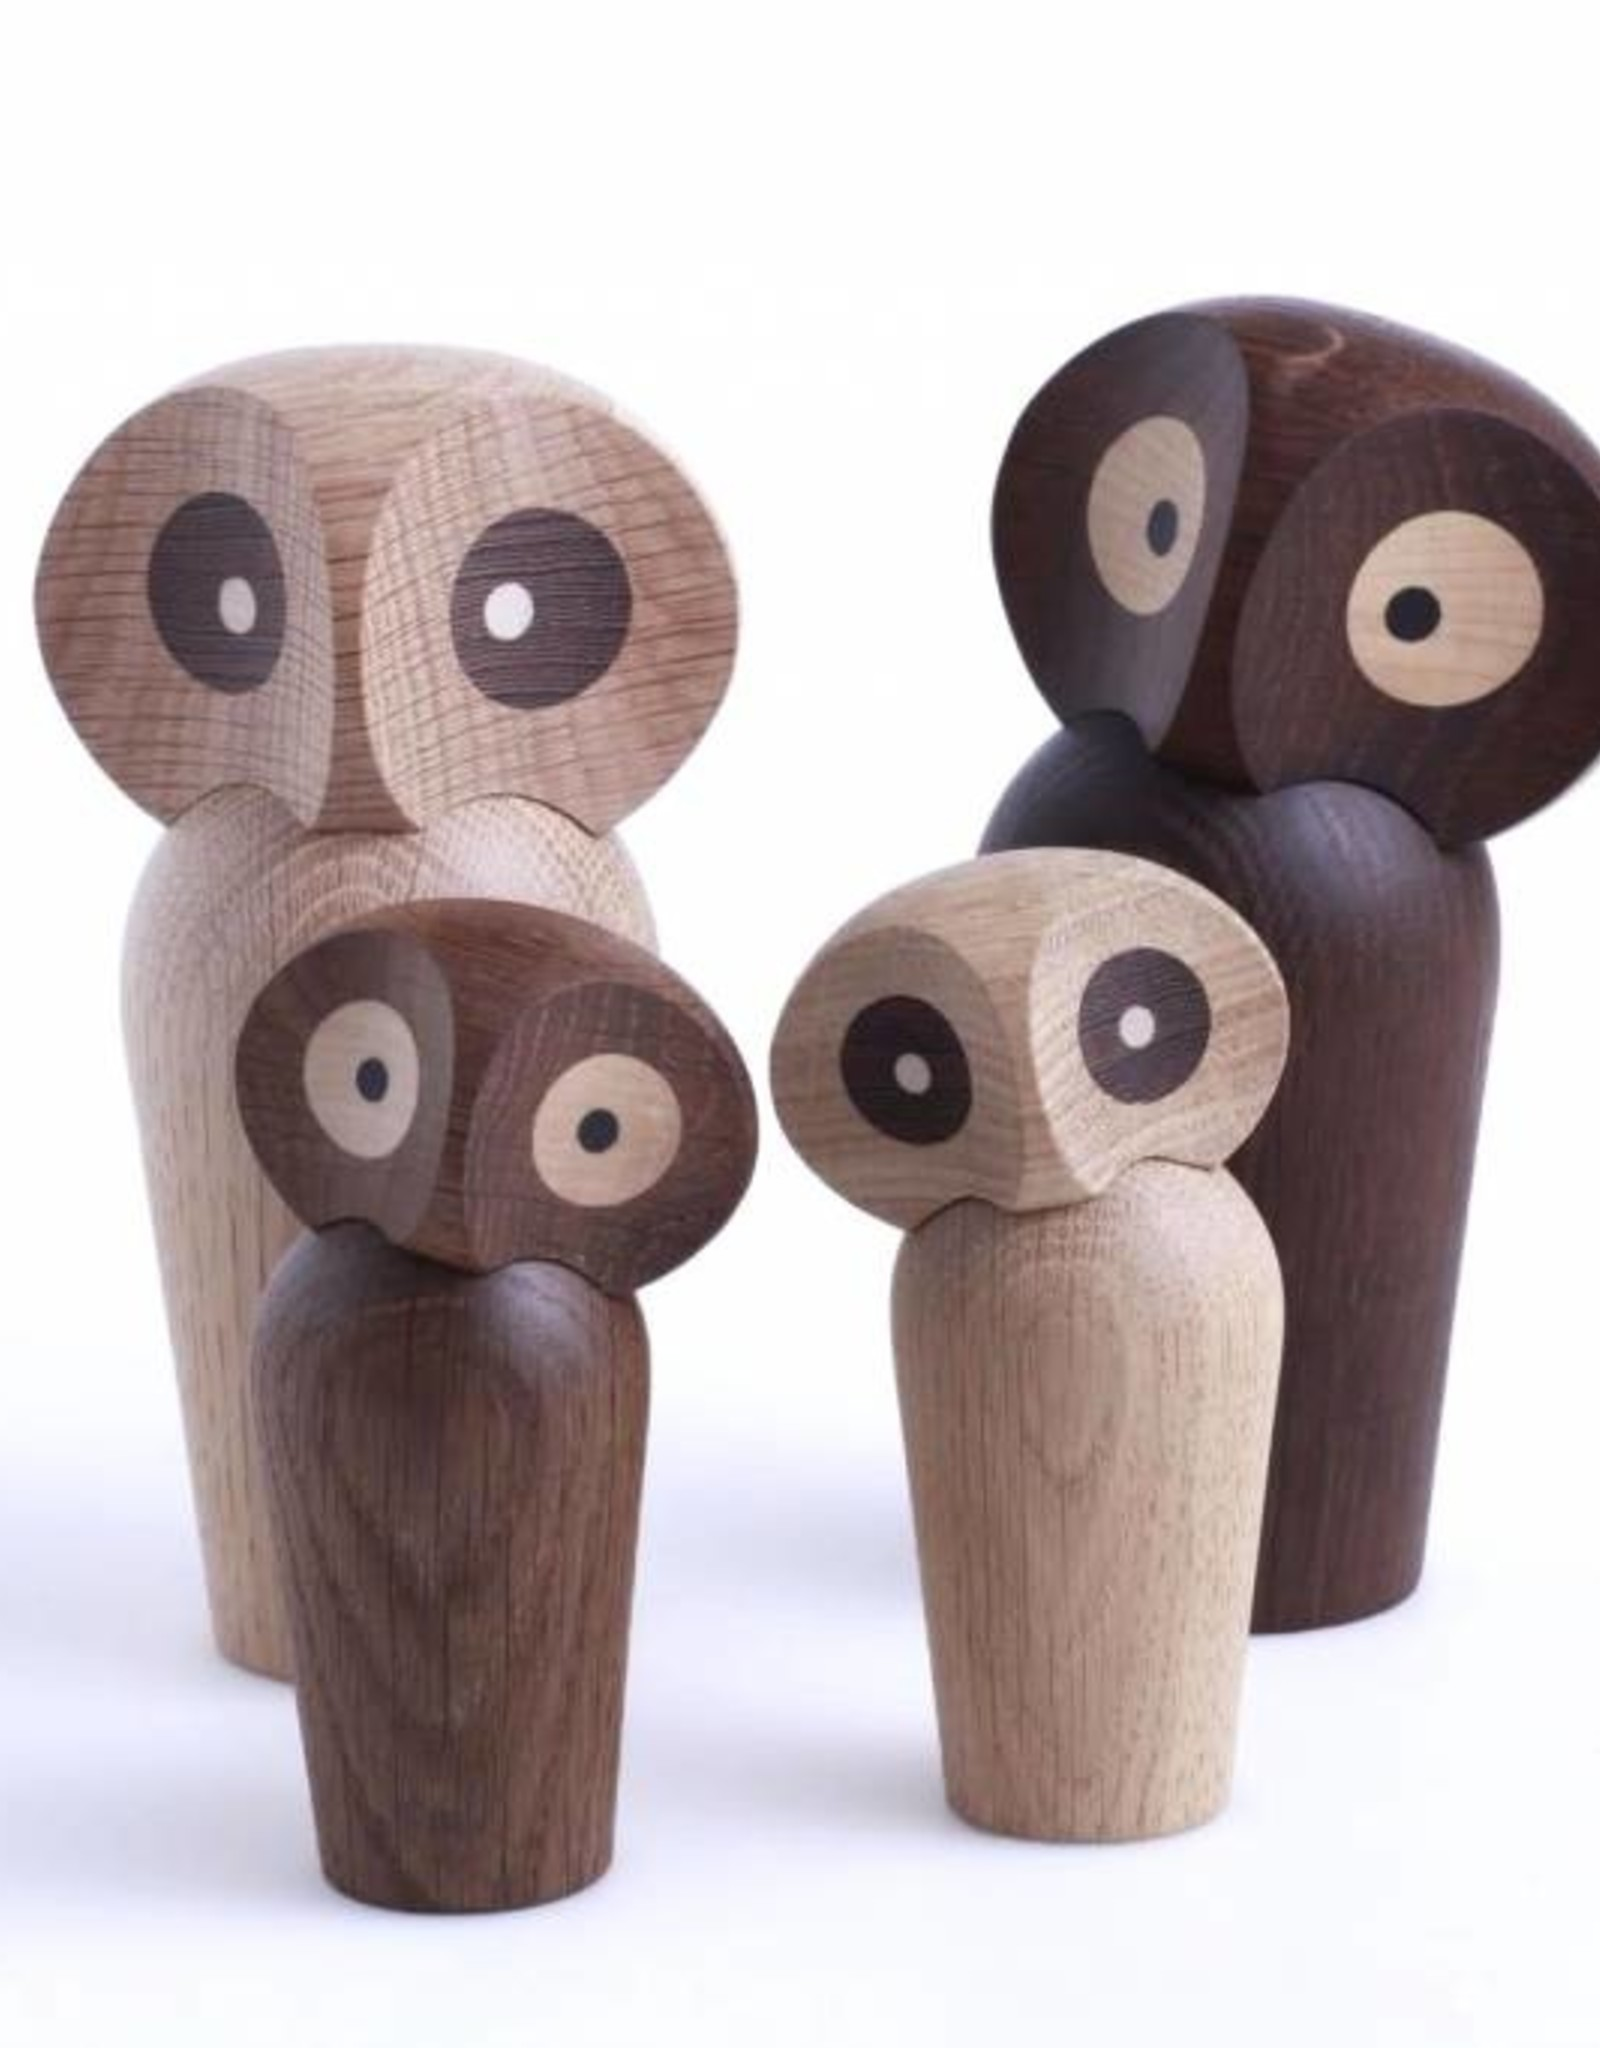 Owl by Paul Anker | Smoked oak | 170mm